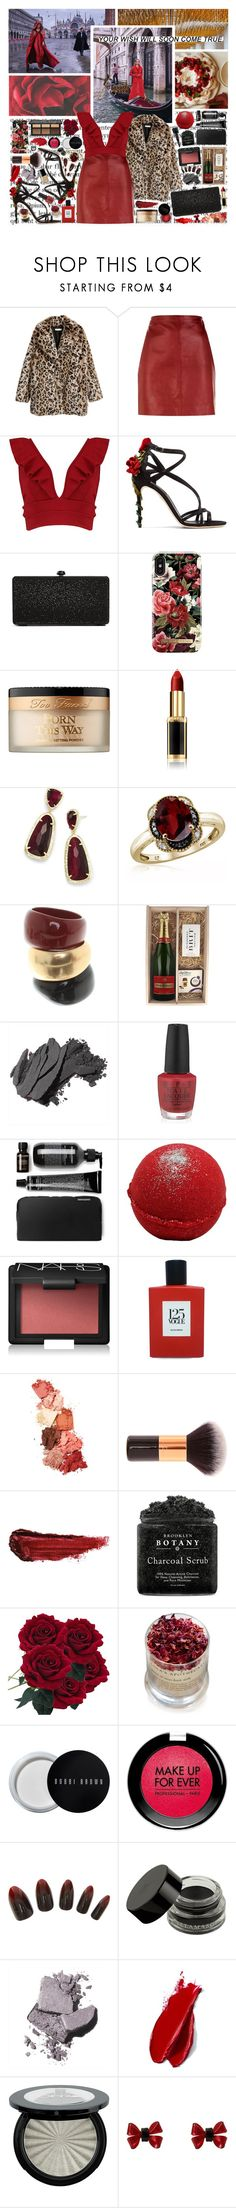 """wish"" by ezster ❤ liked on Polyvore featuring Sandro, Boohoo, Dolce&Gabbana, Deux Lux, iDeal of Sweden, Concrete Minerals, Too Faced Cosmetics, L'Oréal Paris, Kendra Scott and Jewelonfire"